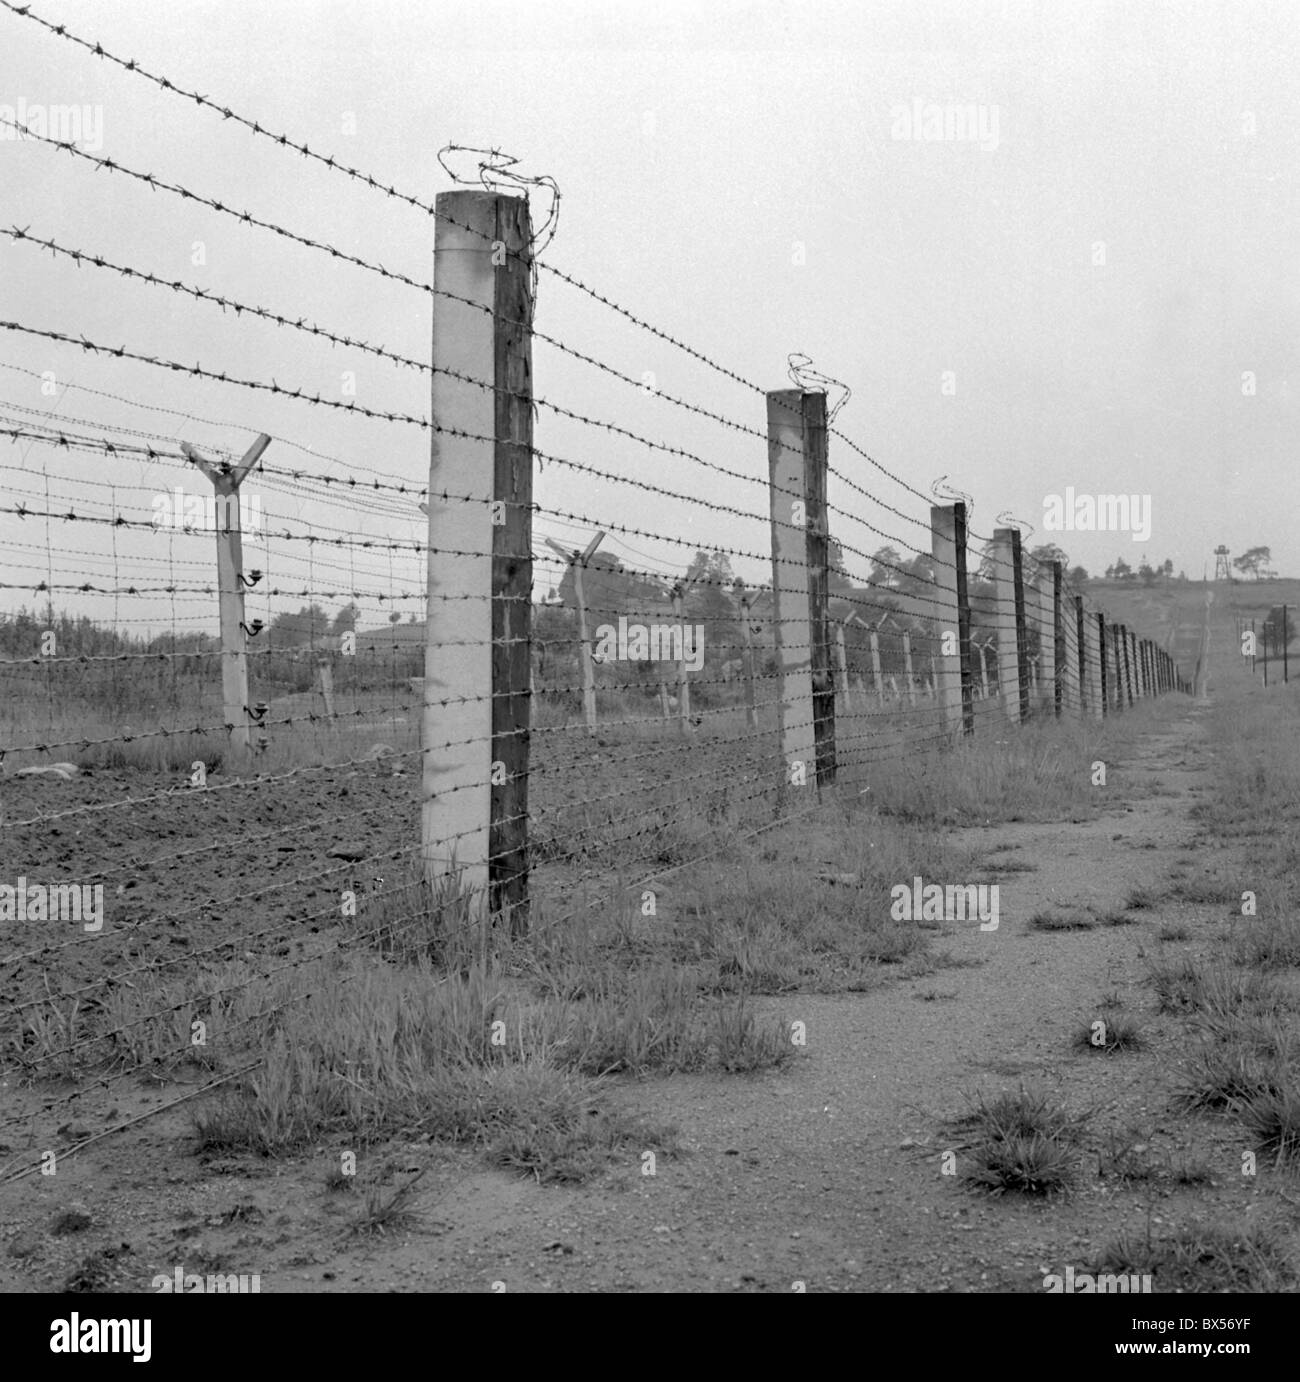 Iron curtain - Iron Curtain Frontier Border Fence Barbed Wire Stock Image